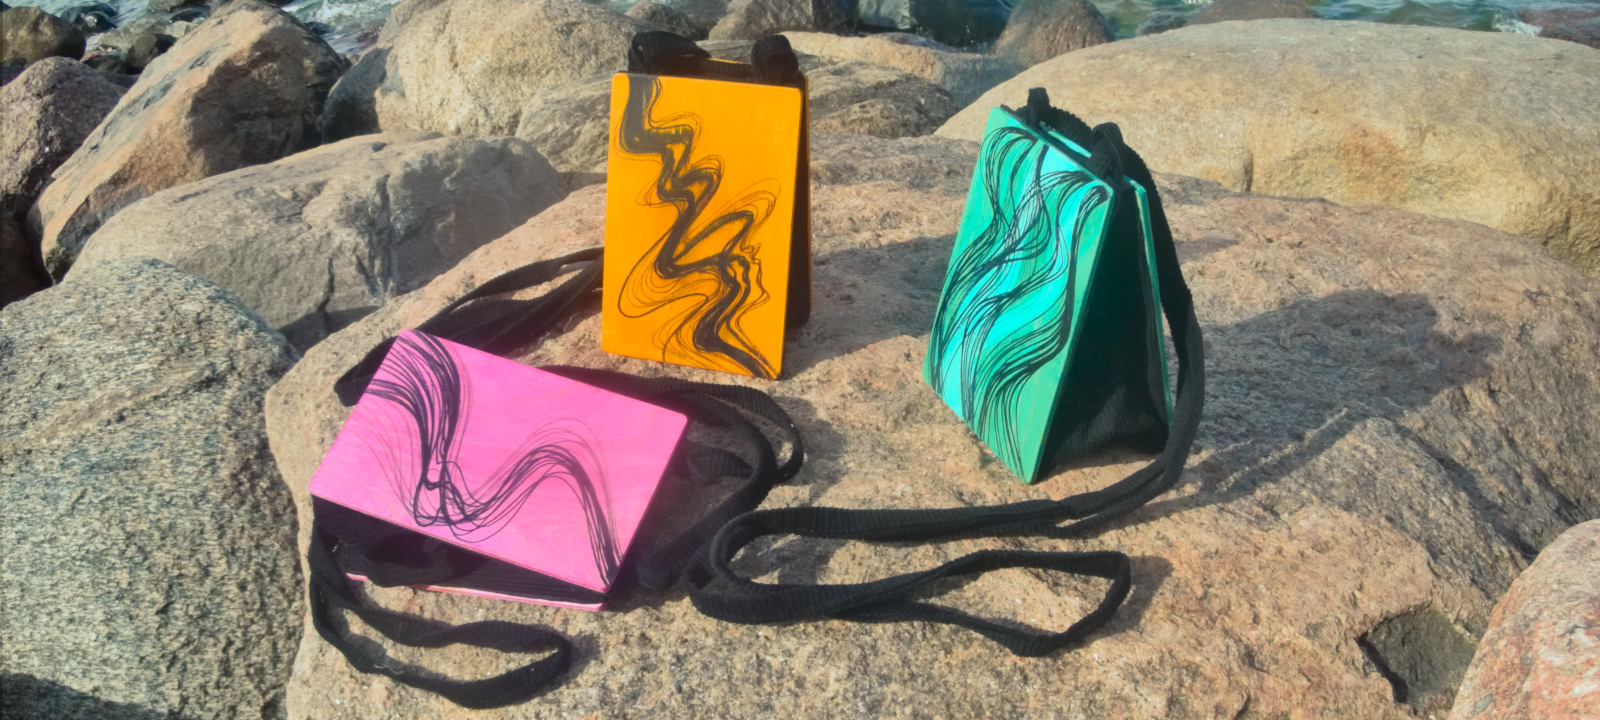 Three bags with décor—pink, yellow, and green—on a rock